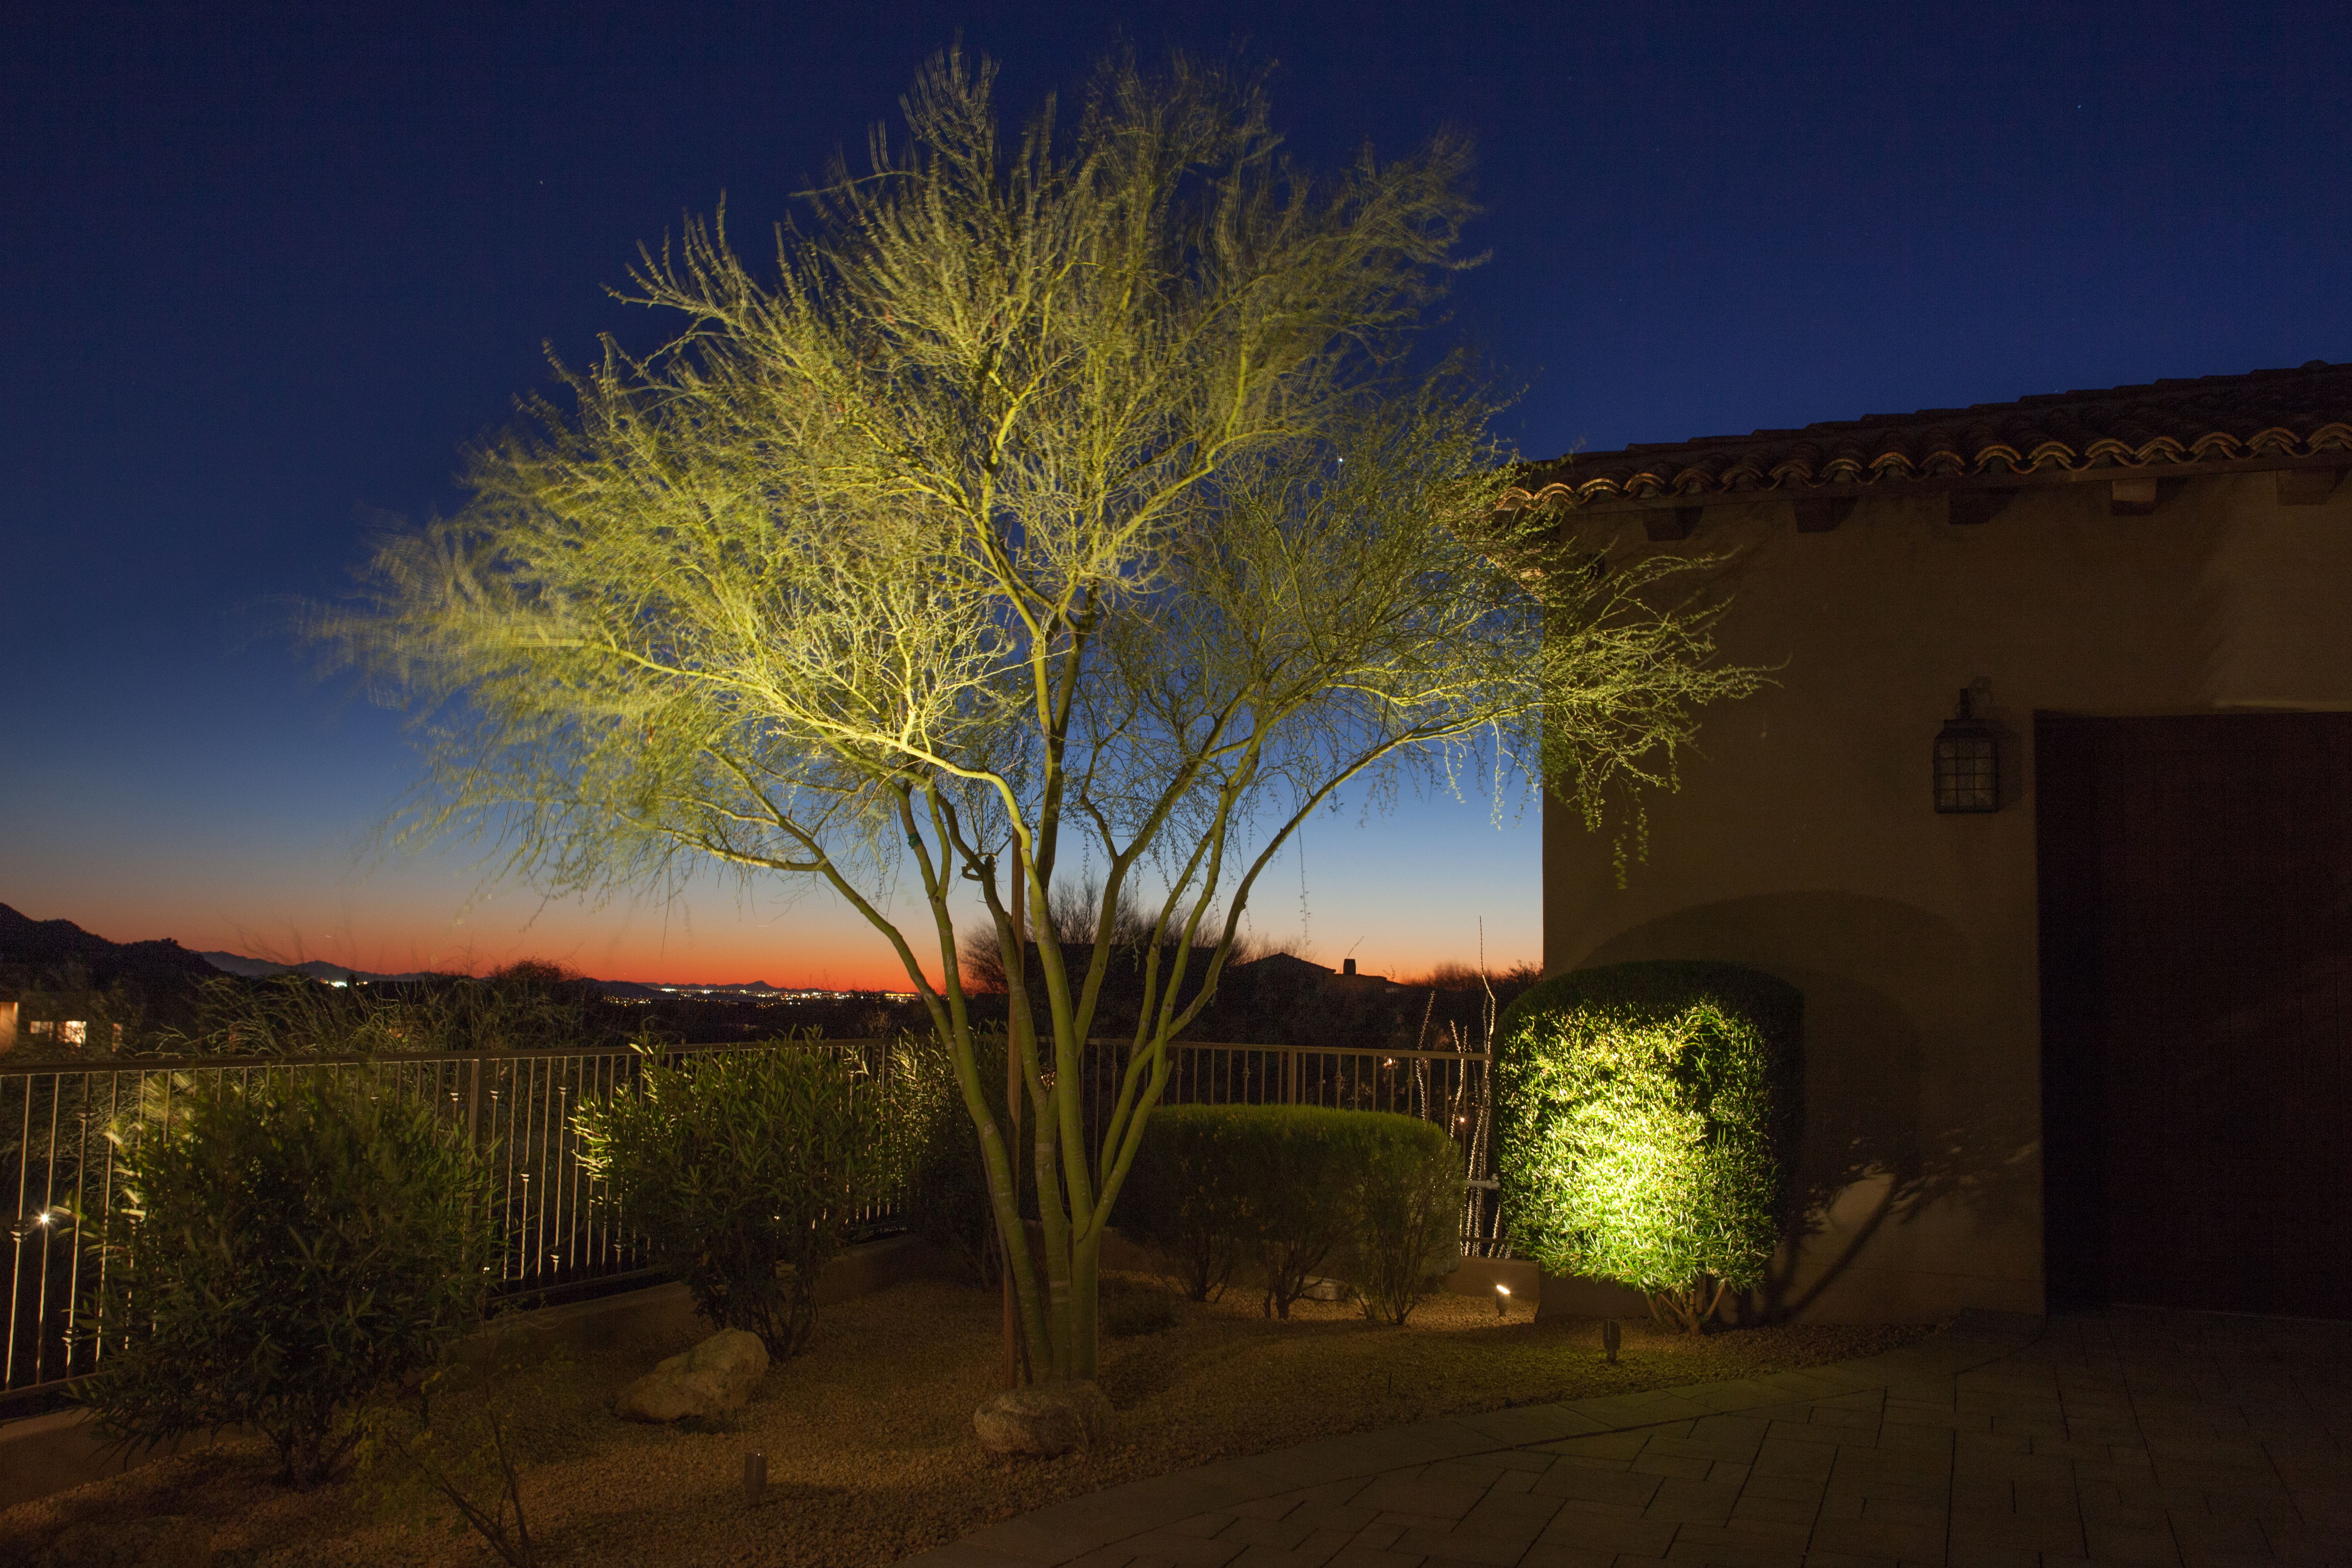 Innovative Lighting Electric Inc Is A Full Service Lighting And Electrical Company Privately Owned And Operated In Scottsdale Arizona